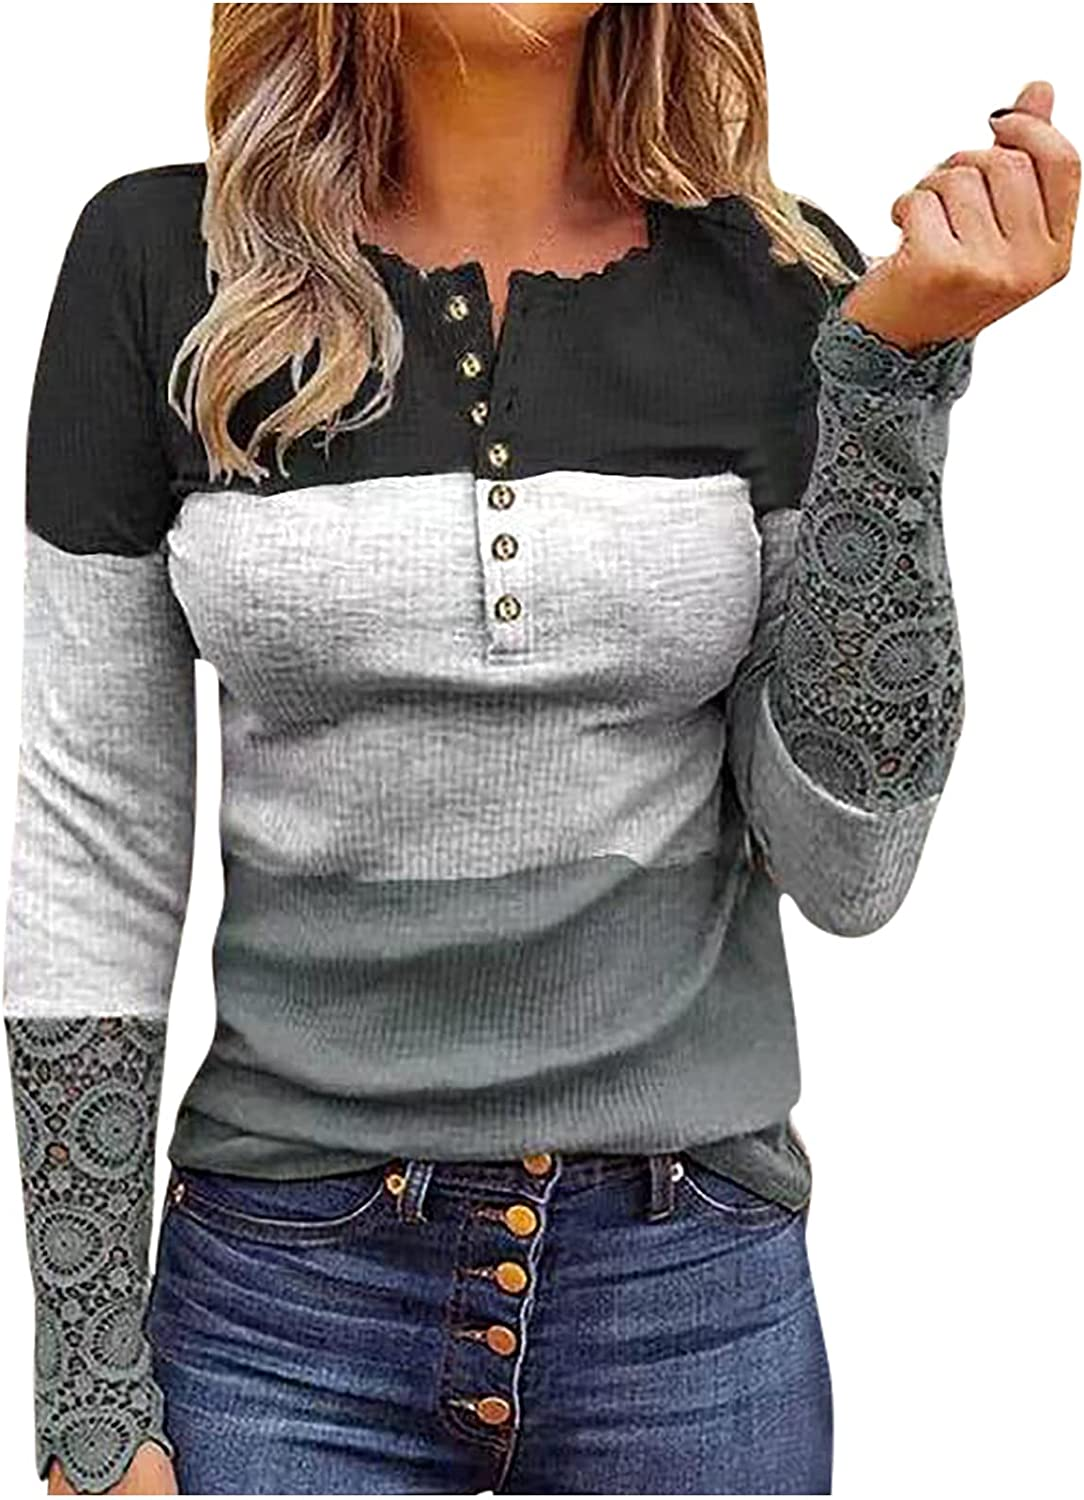 Kanzd Womens Tops Long Sleeve Shirts Color Block Sexy Lace Stitching Sweatshirts Trendy Button Blouse Tunic T Shirts Tops